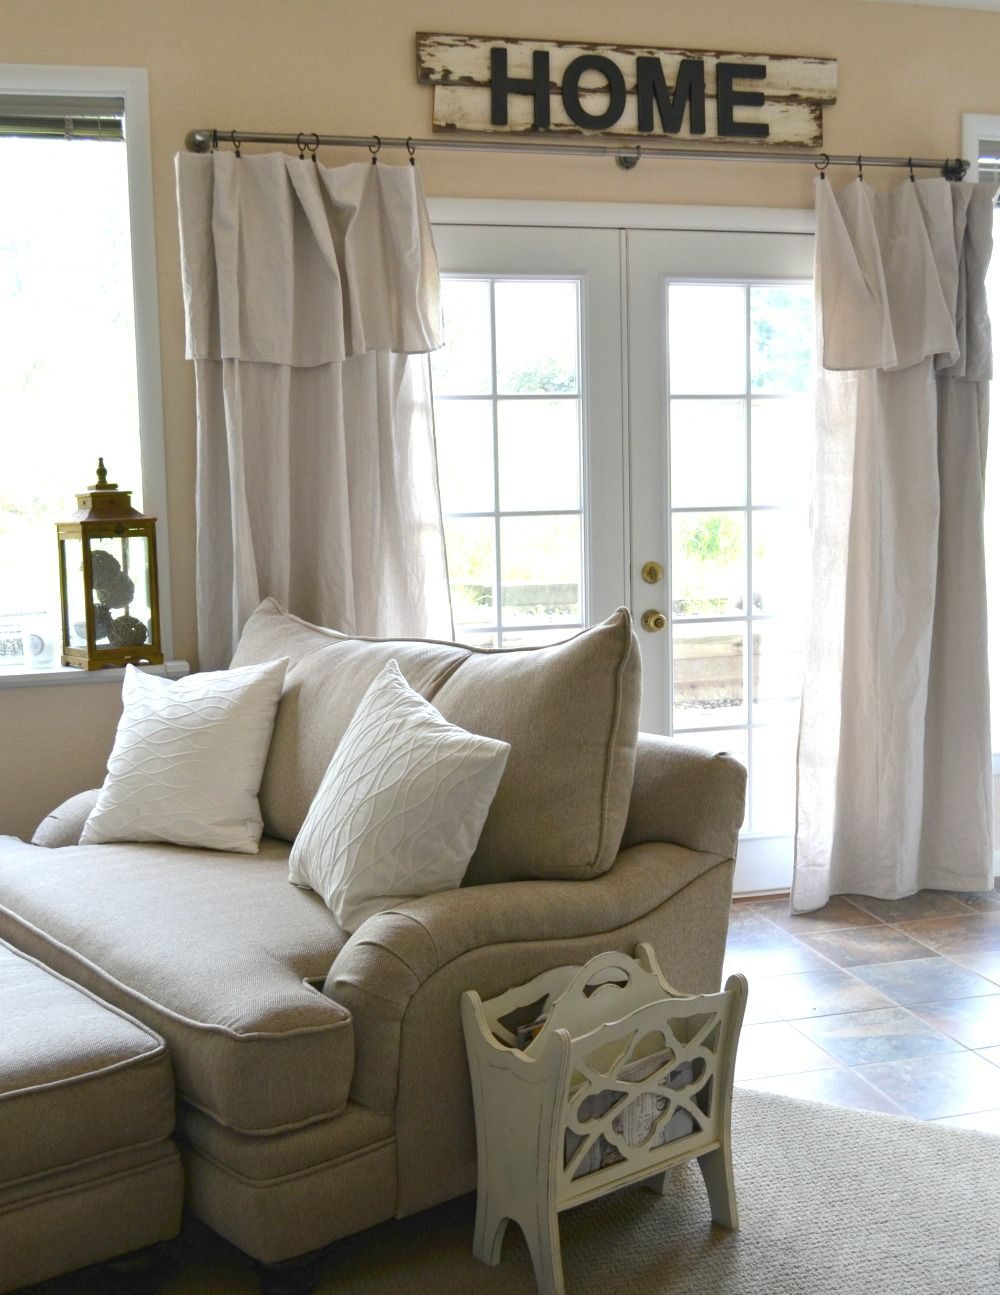 Window Dressing Ideas For Living Rooms Room Design With End Tables My 5 Easiest Diys To Try This Weekend Diy Craft Tutorials Easy And Cheap Farmhouse Style Projects